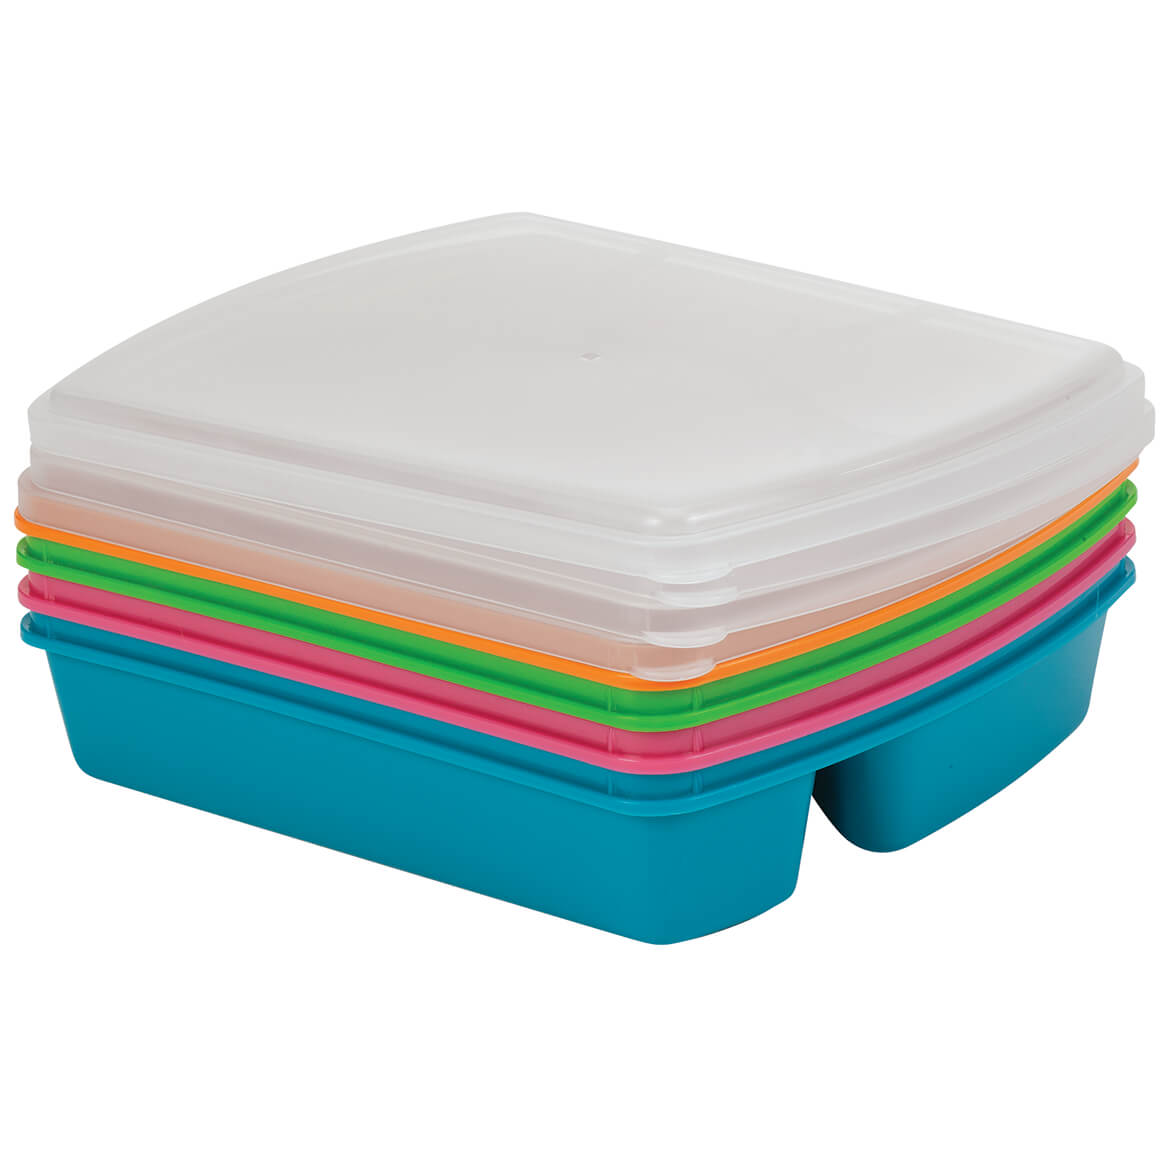 4-Section Microwave Tray with Lid, Set of 4-370894